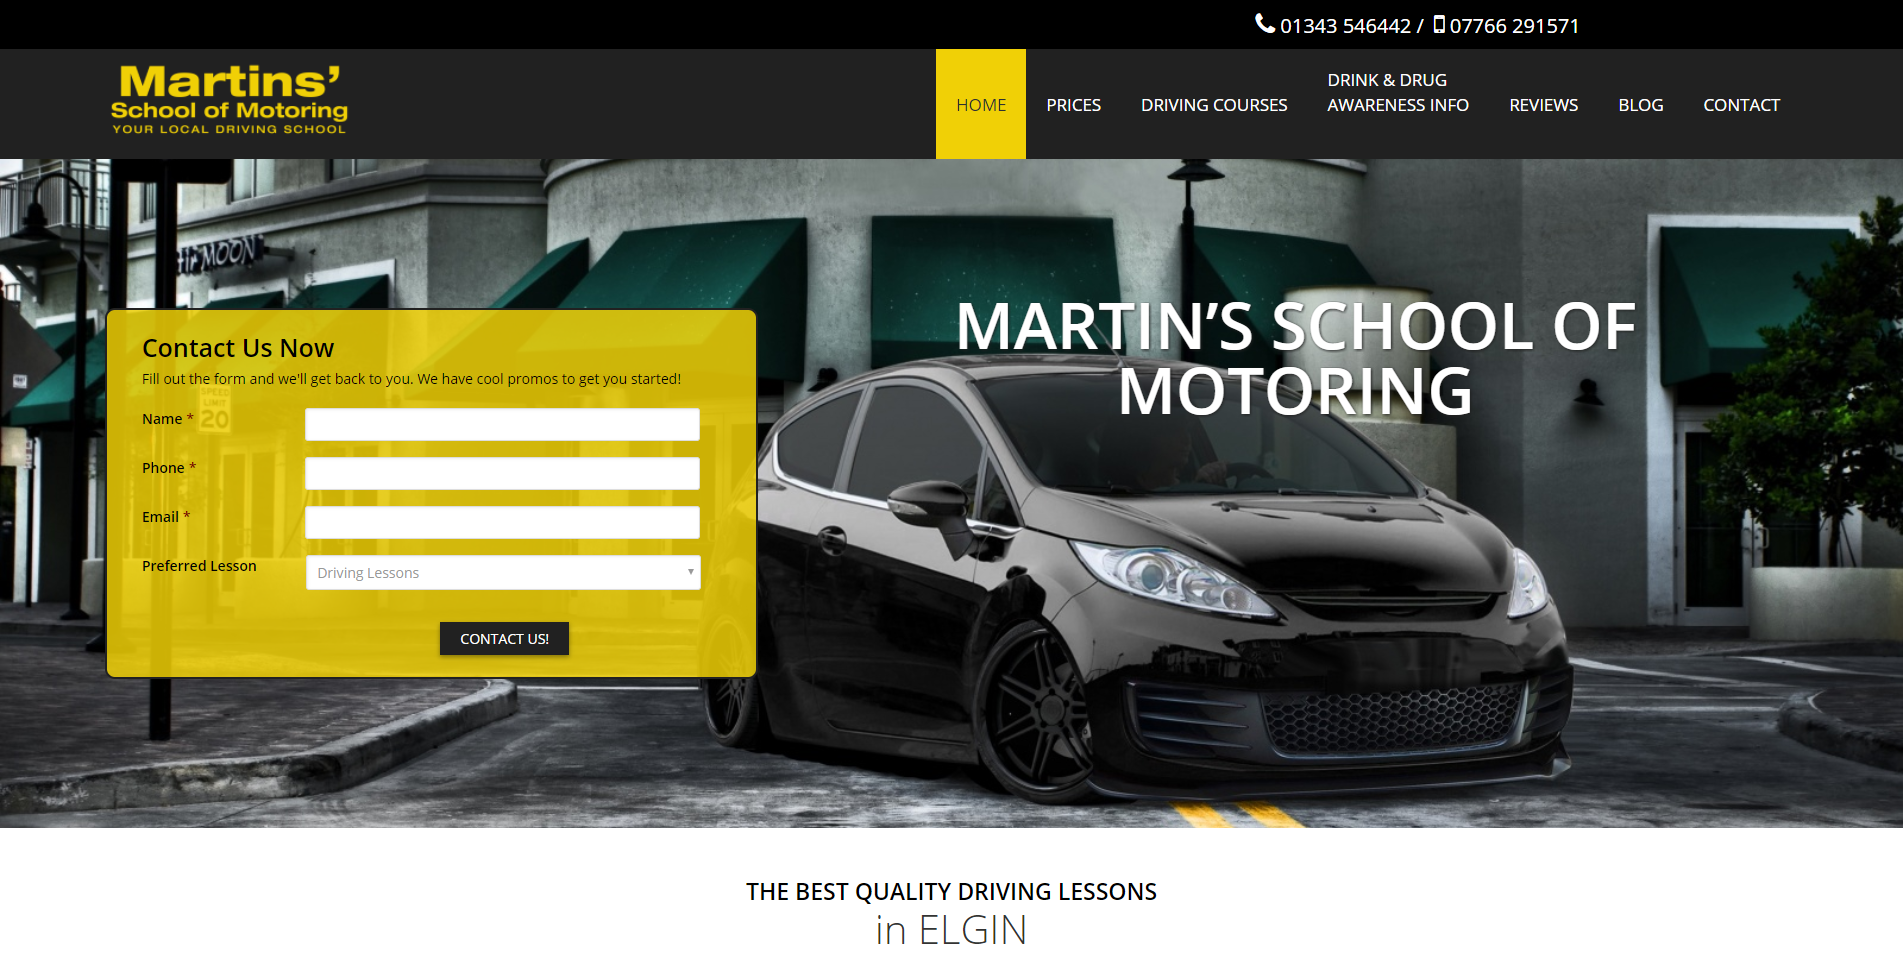 Martin School of Motoring